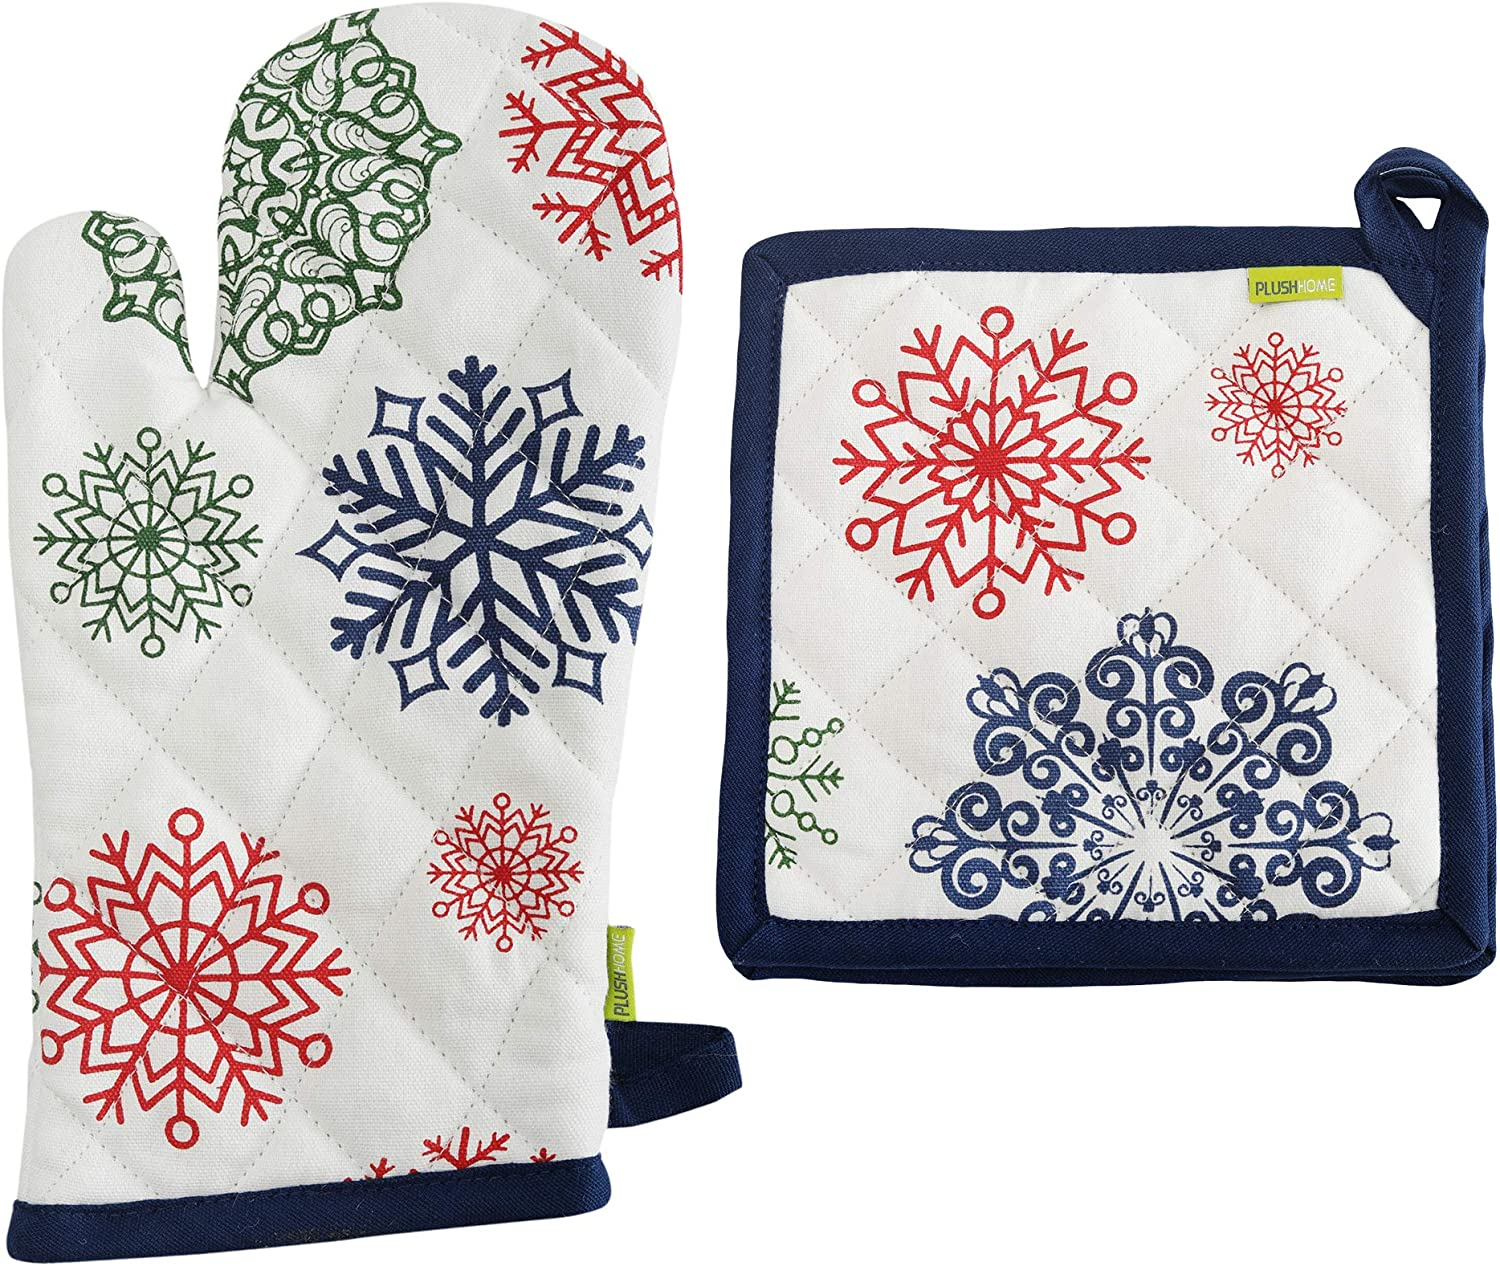 """Plush Home Pot Holder and Oven Mitt Set - Snowflakes, 100% Cotton, Set of 1 Oven Mitten of Size 7"""" X12 Inch & 1 Potholder of Size 8"""" X8 Inch with high Heat Resistant Polyester Filling"""